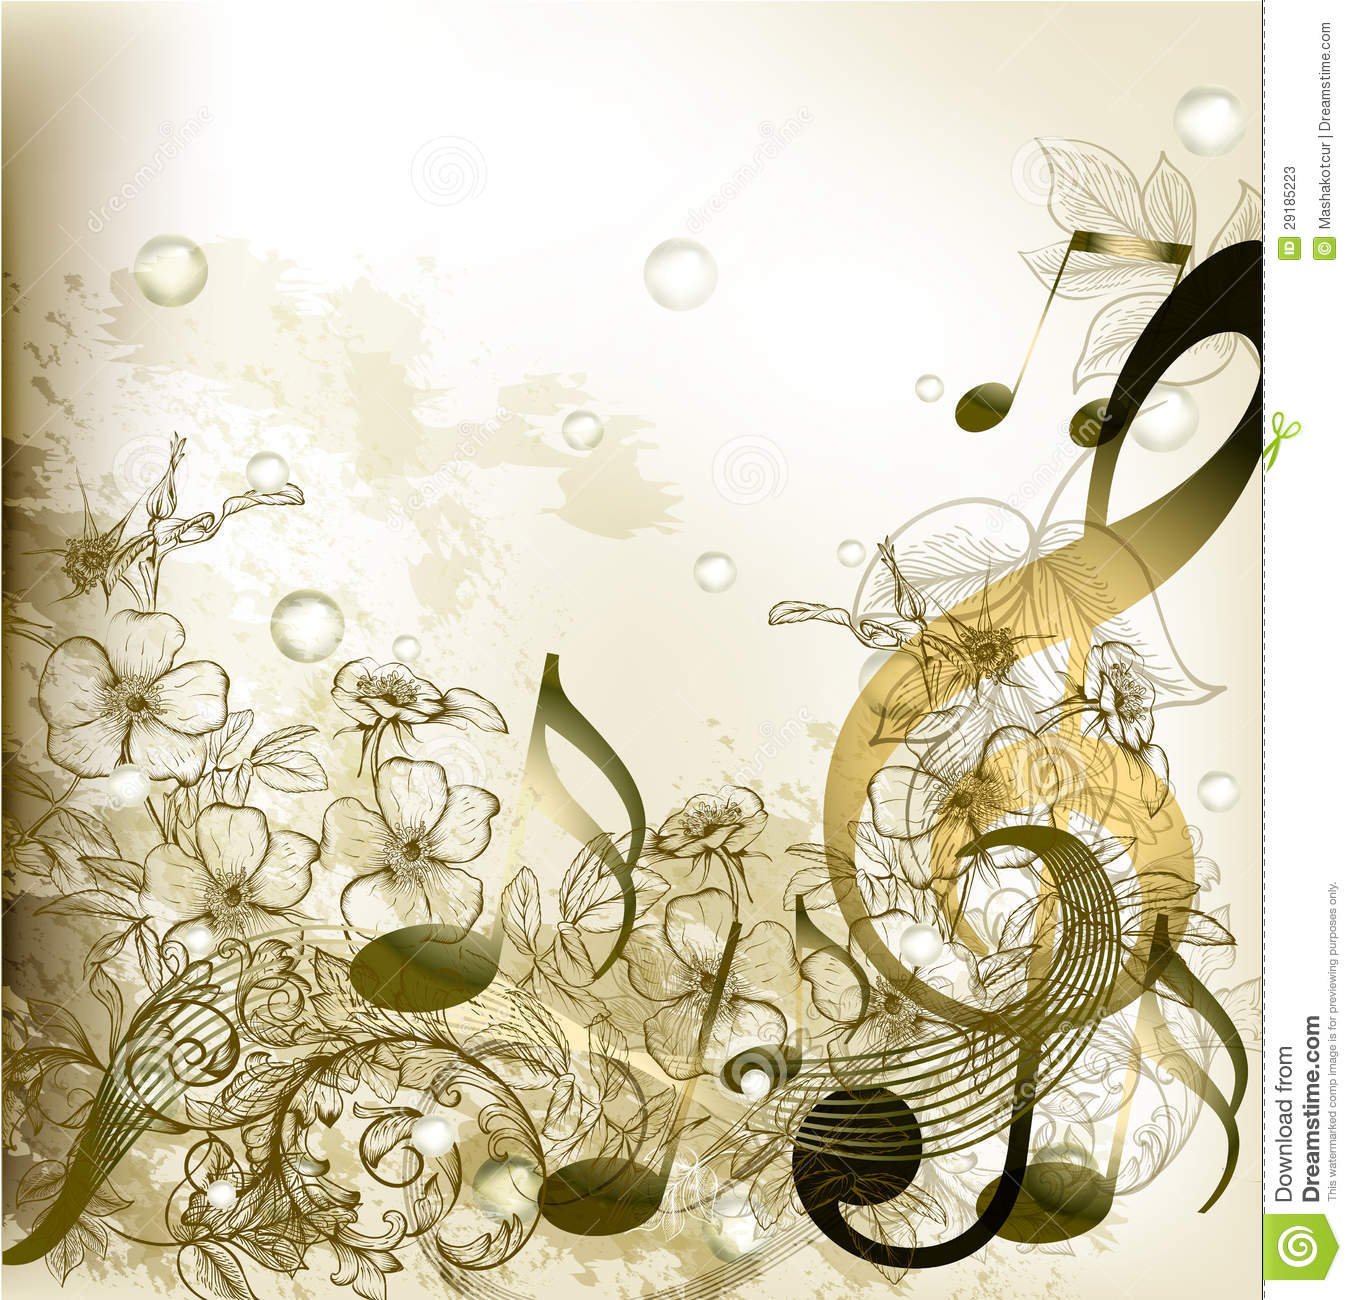 music notes backgrounds floral - photo #21